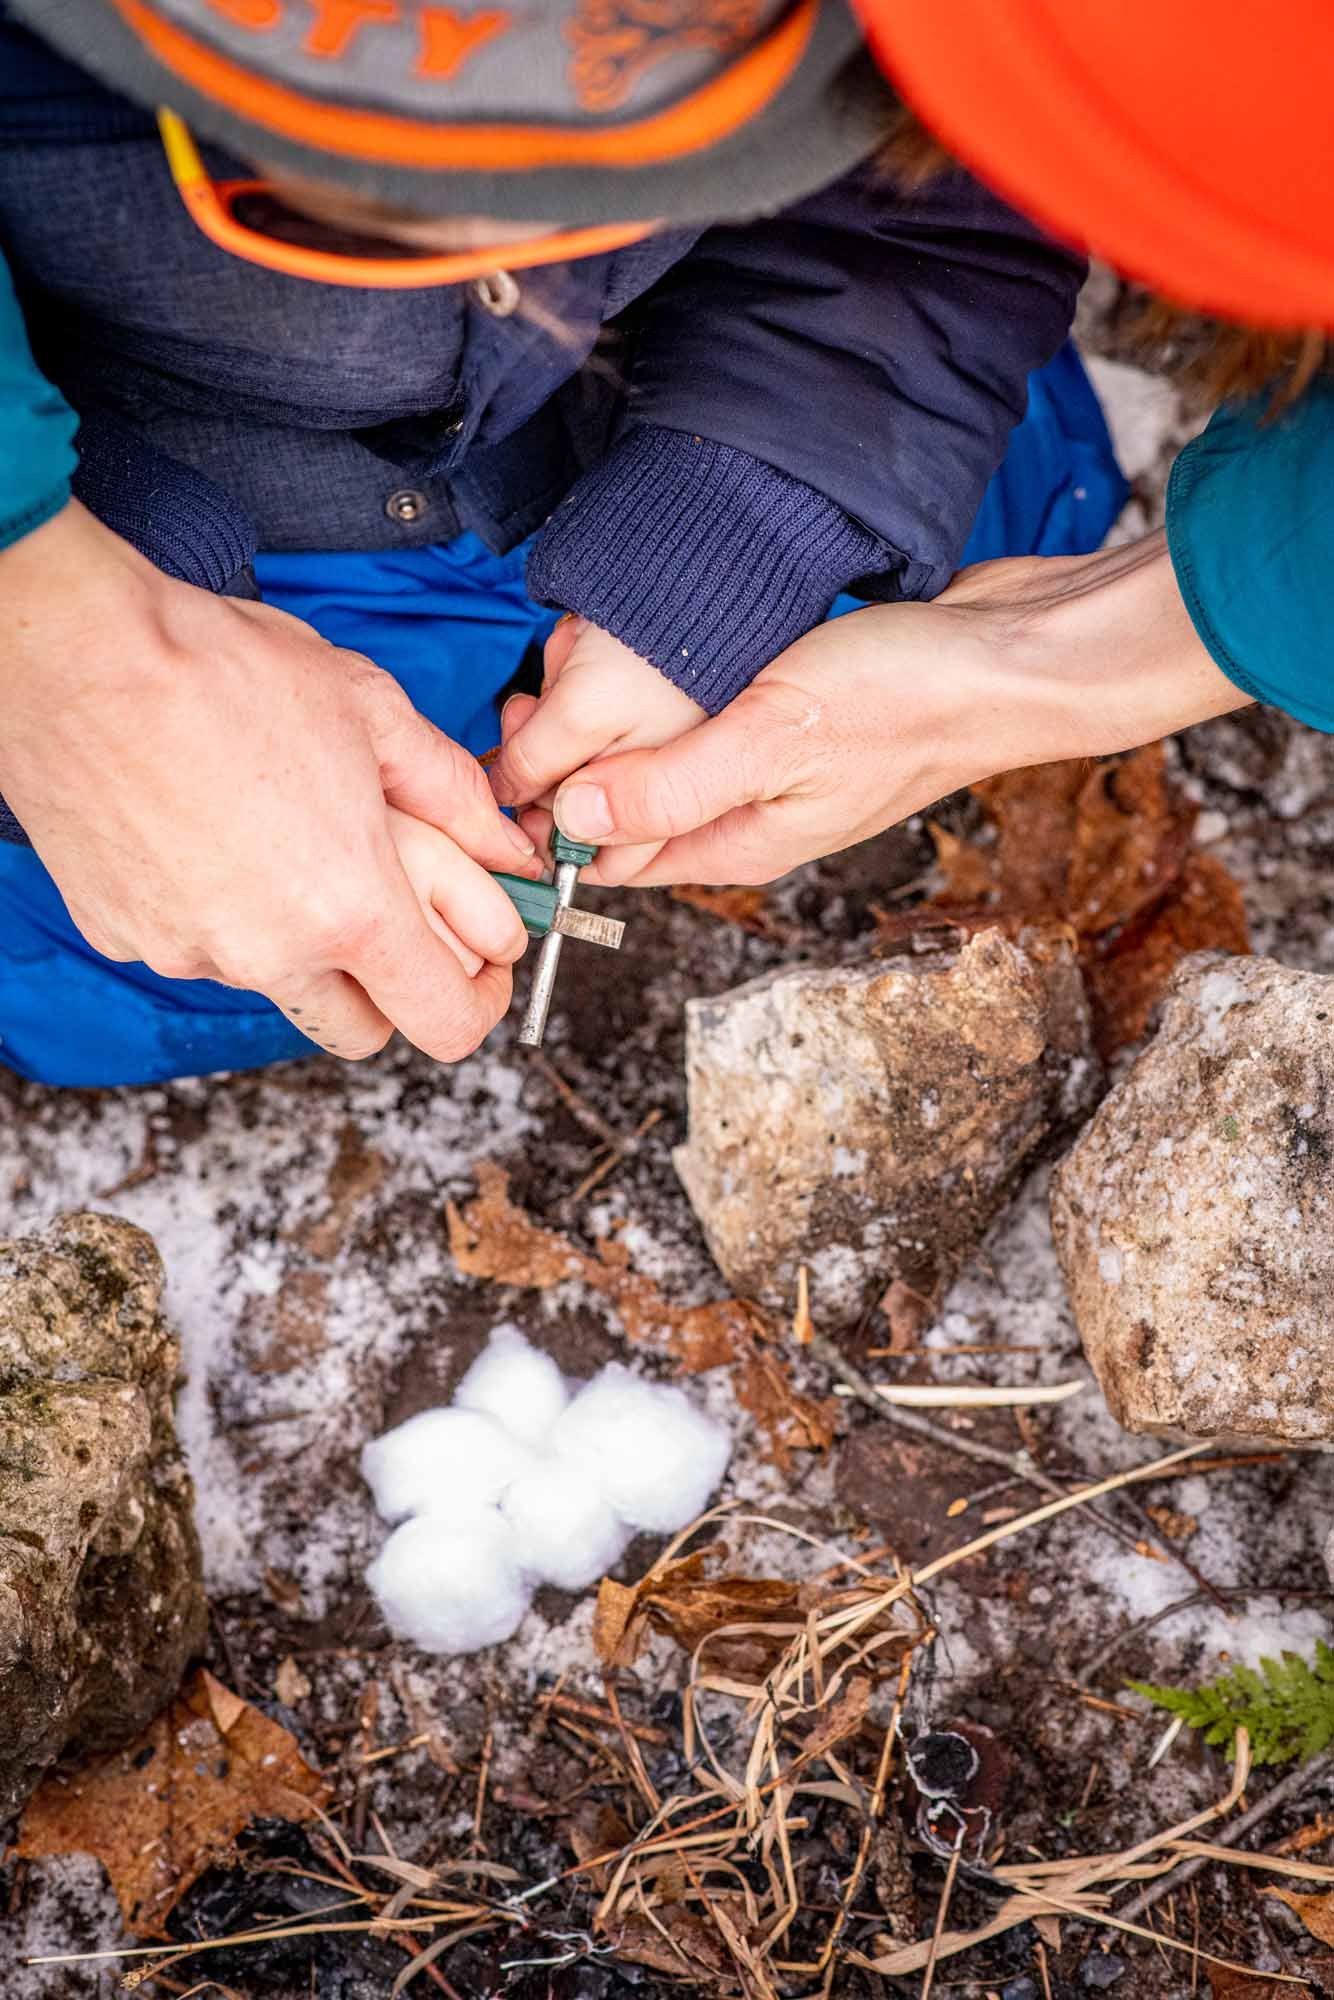 Nature-as-Teacher-Outdoor-Schools-Bring-Learning-Into-the-Elements-photo-by-Kristin-Schnelten-firestarting